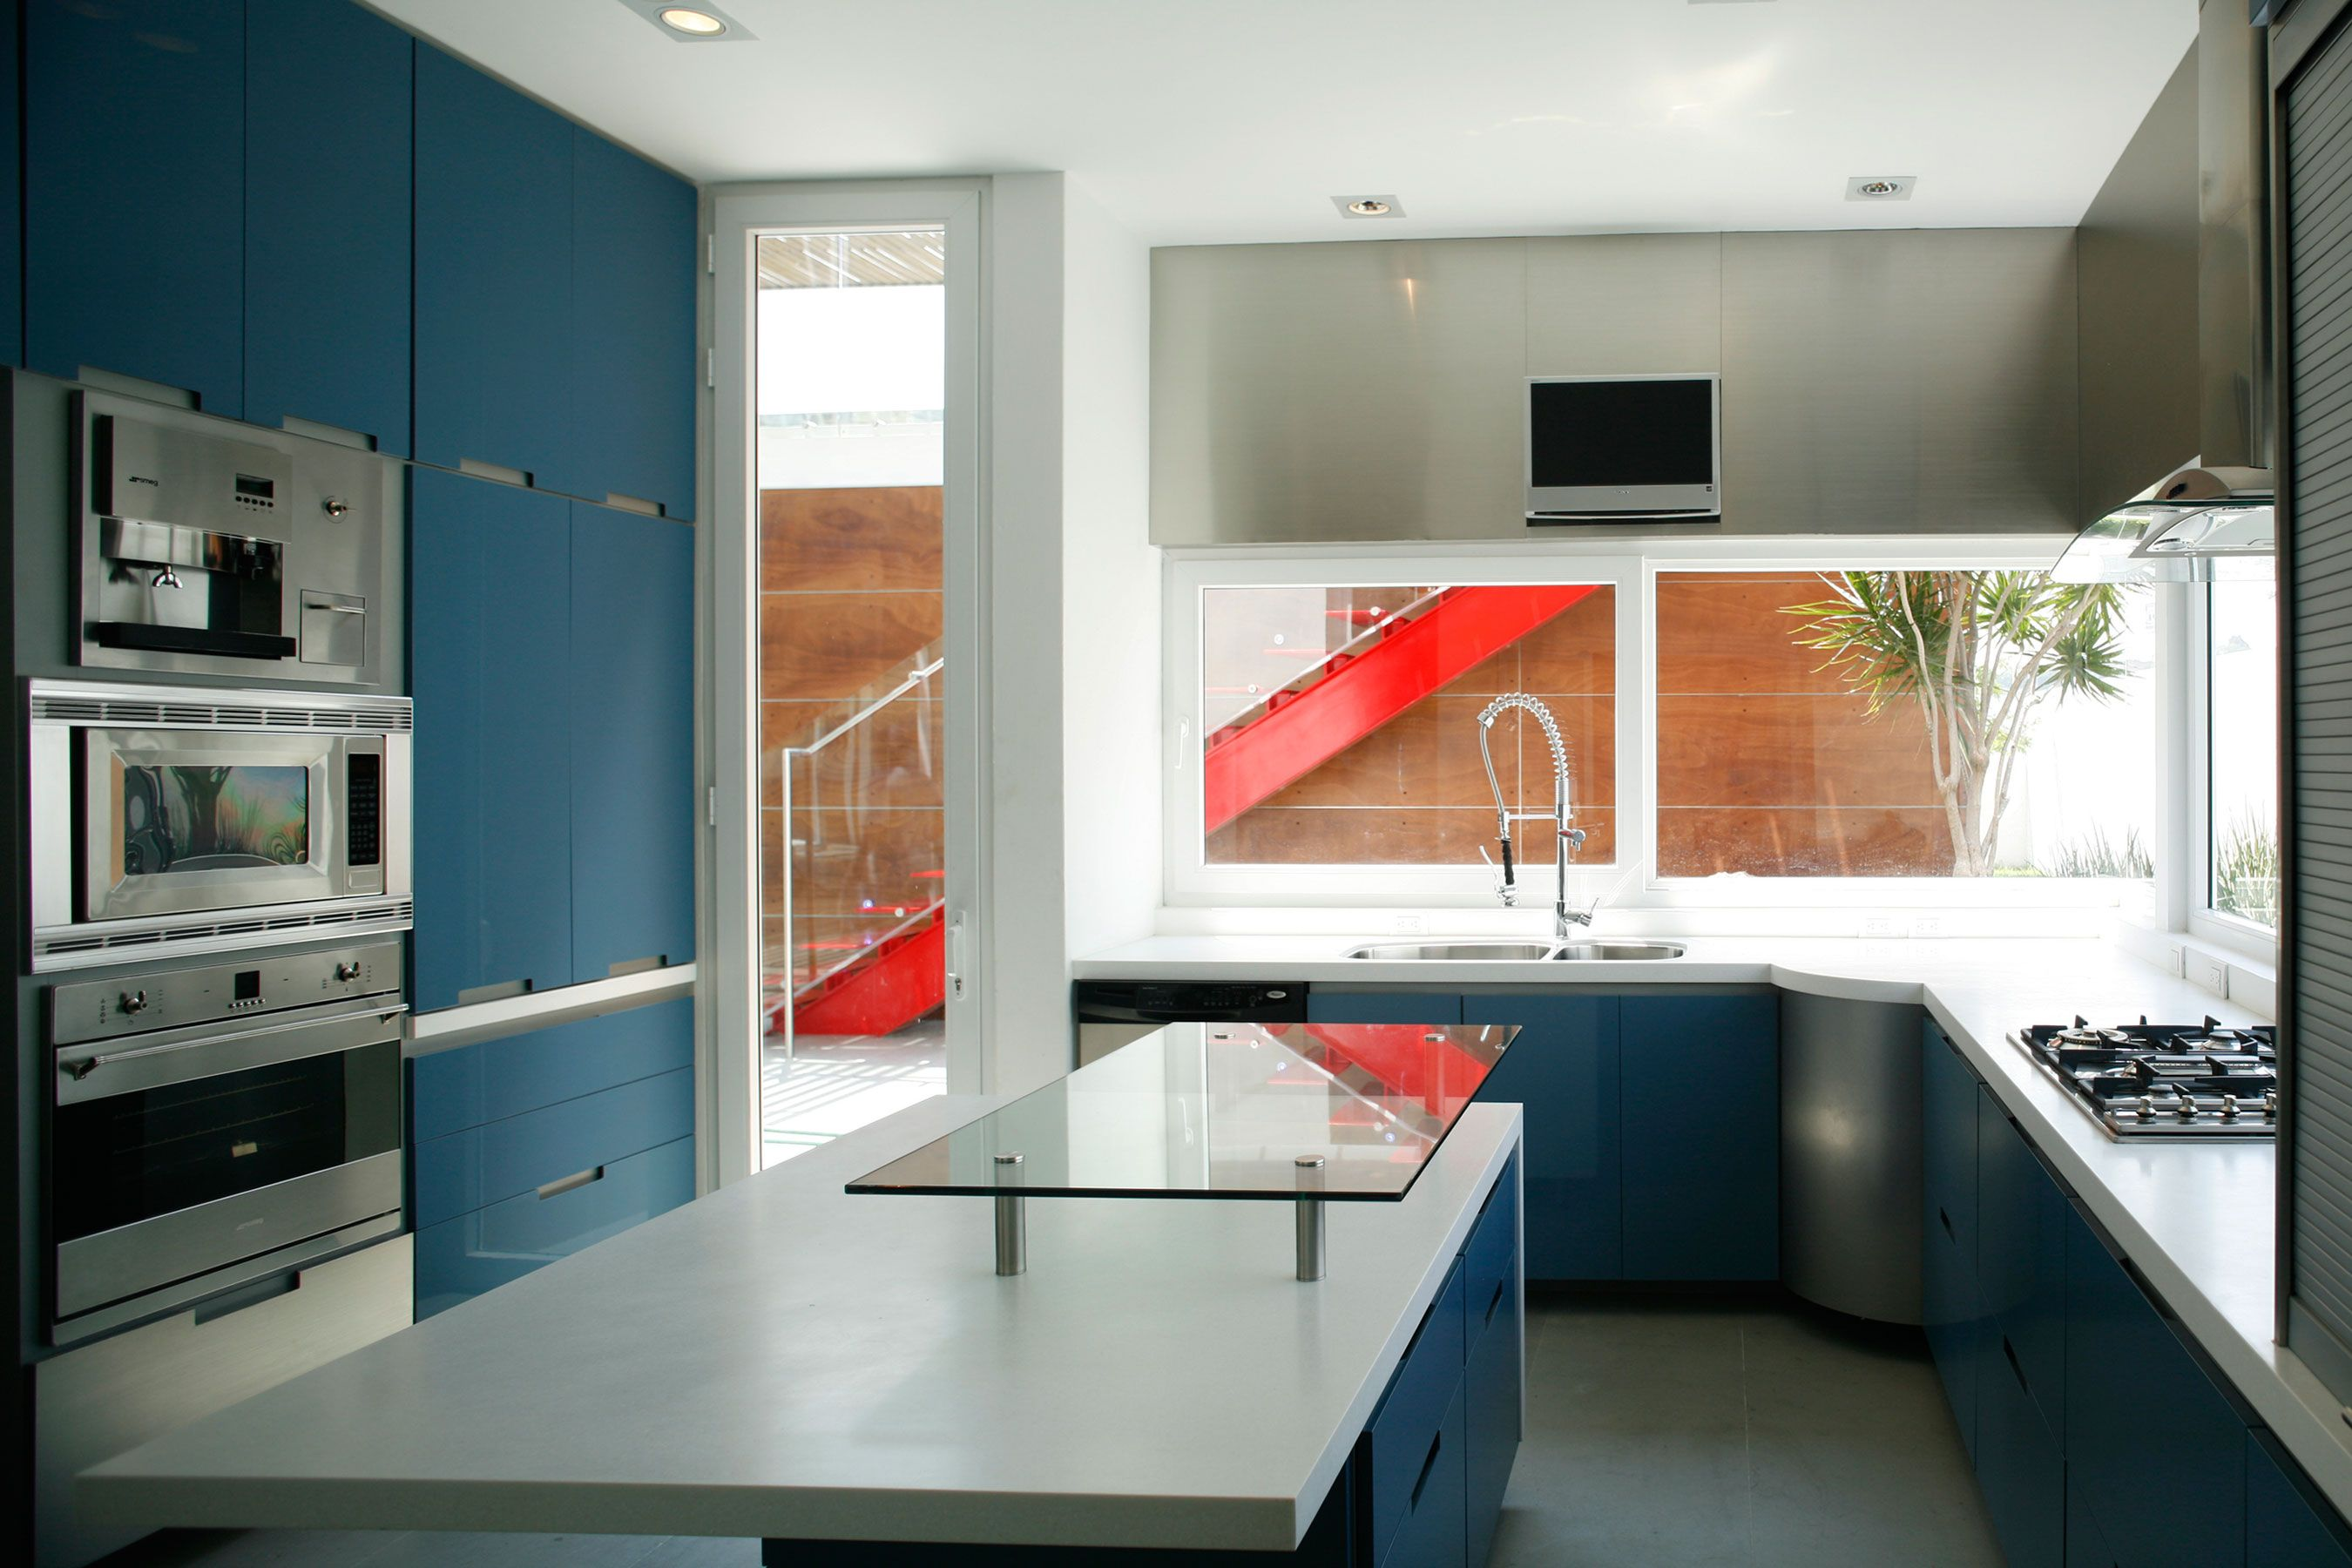 Superbe Good Contemporary Home Design In High Inspiration Ideas: Attractive Kitchen  In The Casa Quince With Blue Island And Blue Cabinets Under The .